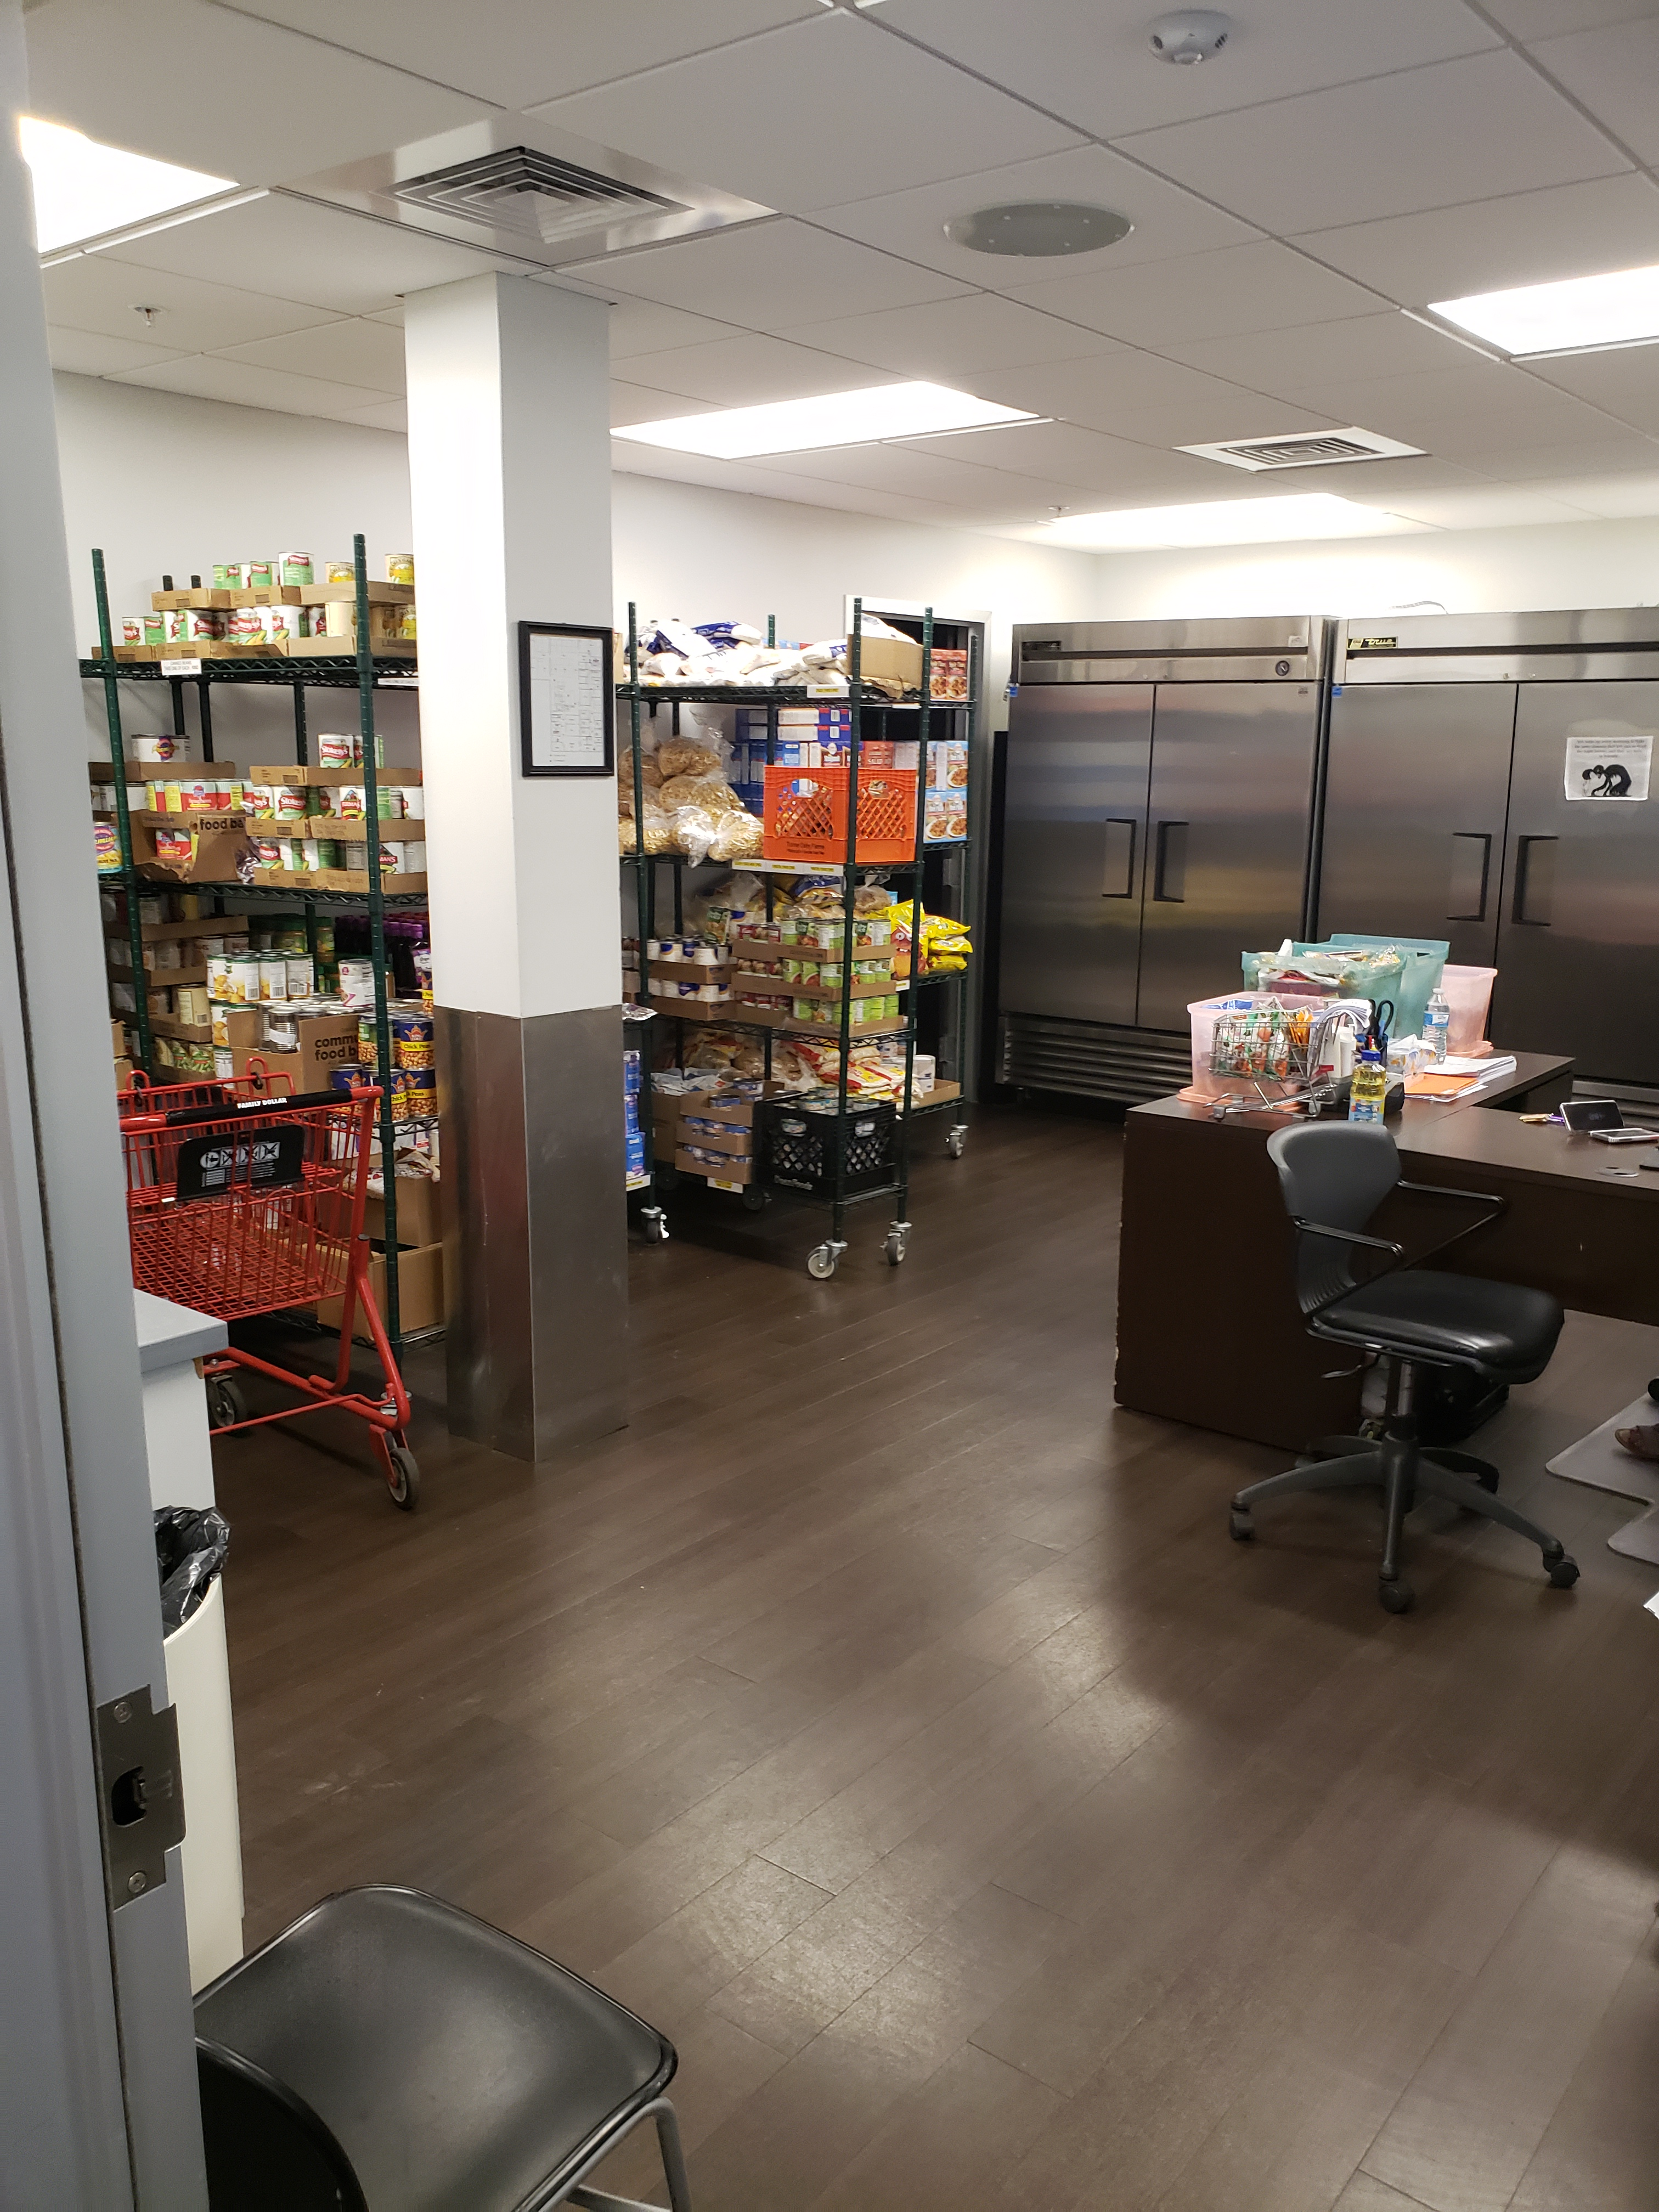 Inside the Pantry